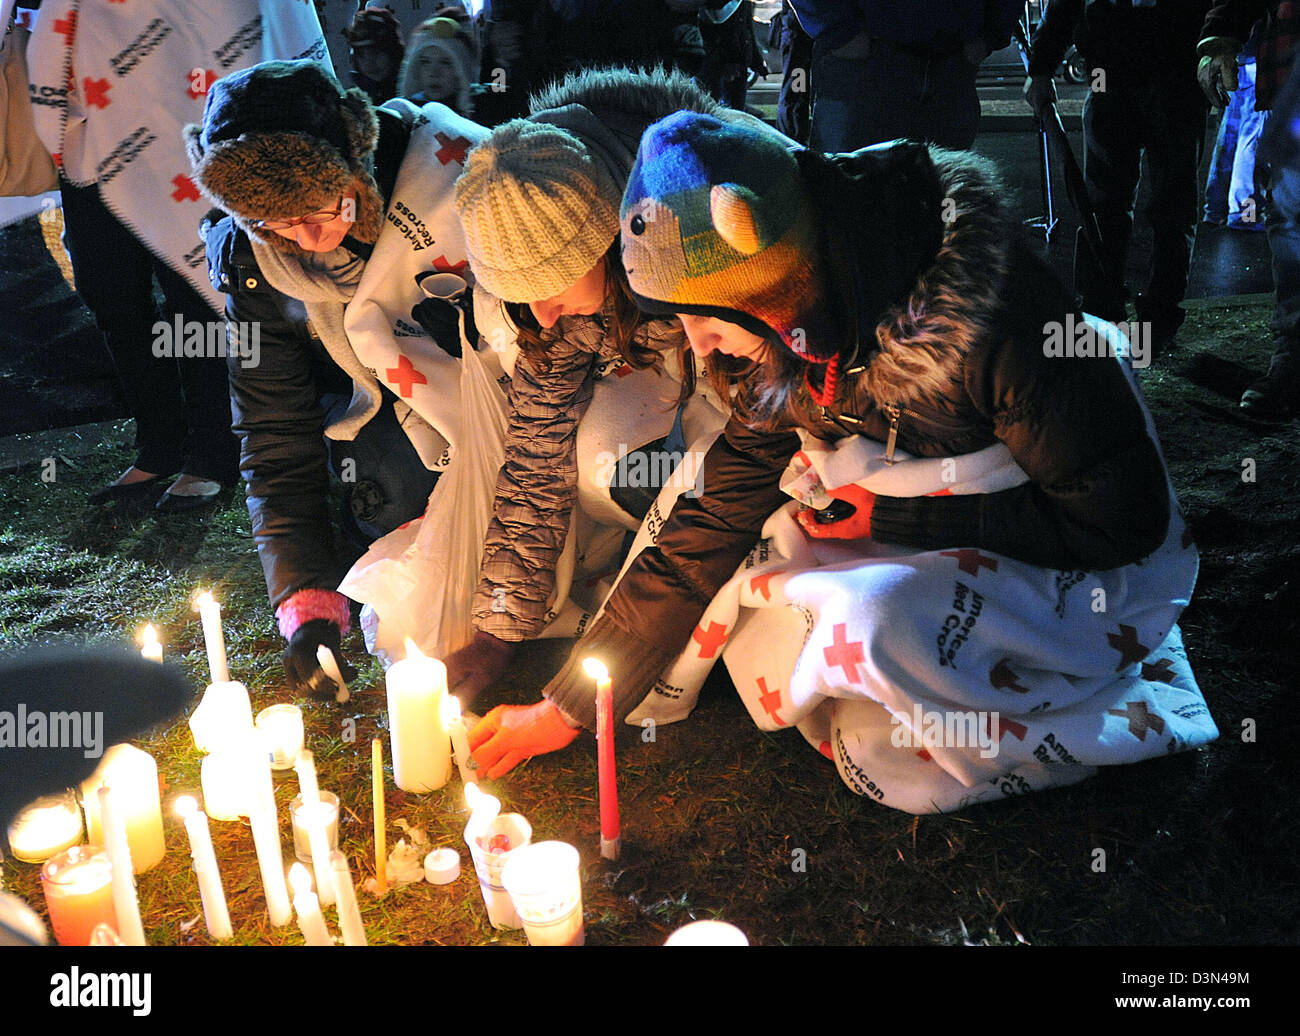 Mourners light candles during a vigil at Newtown High School following the Sandy Hook shooting spree in CT USA - Stock Image